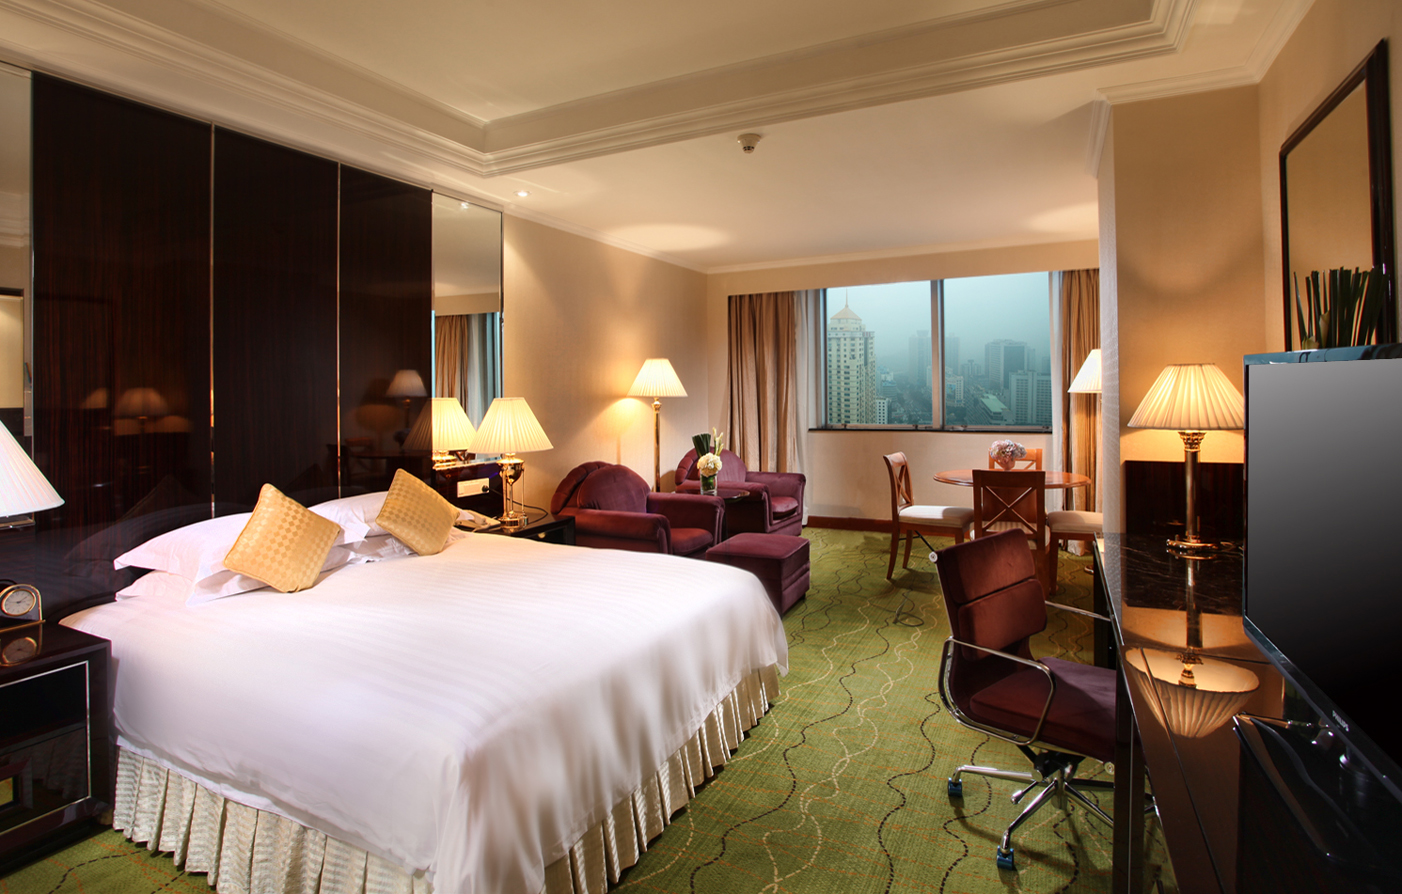 The Panglin Hotel  in Shenzhen